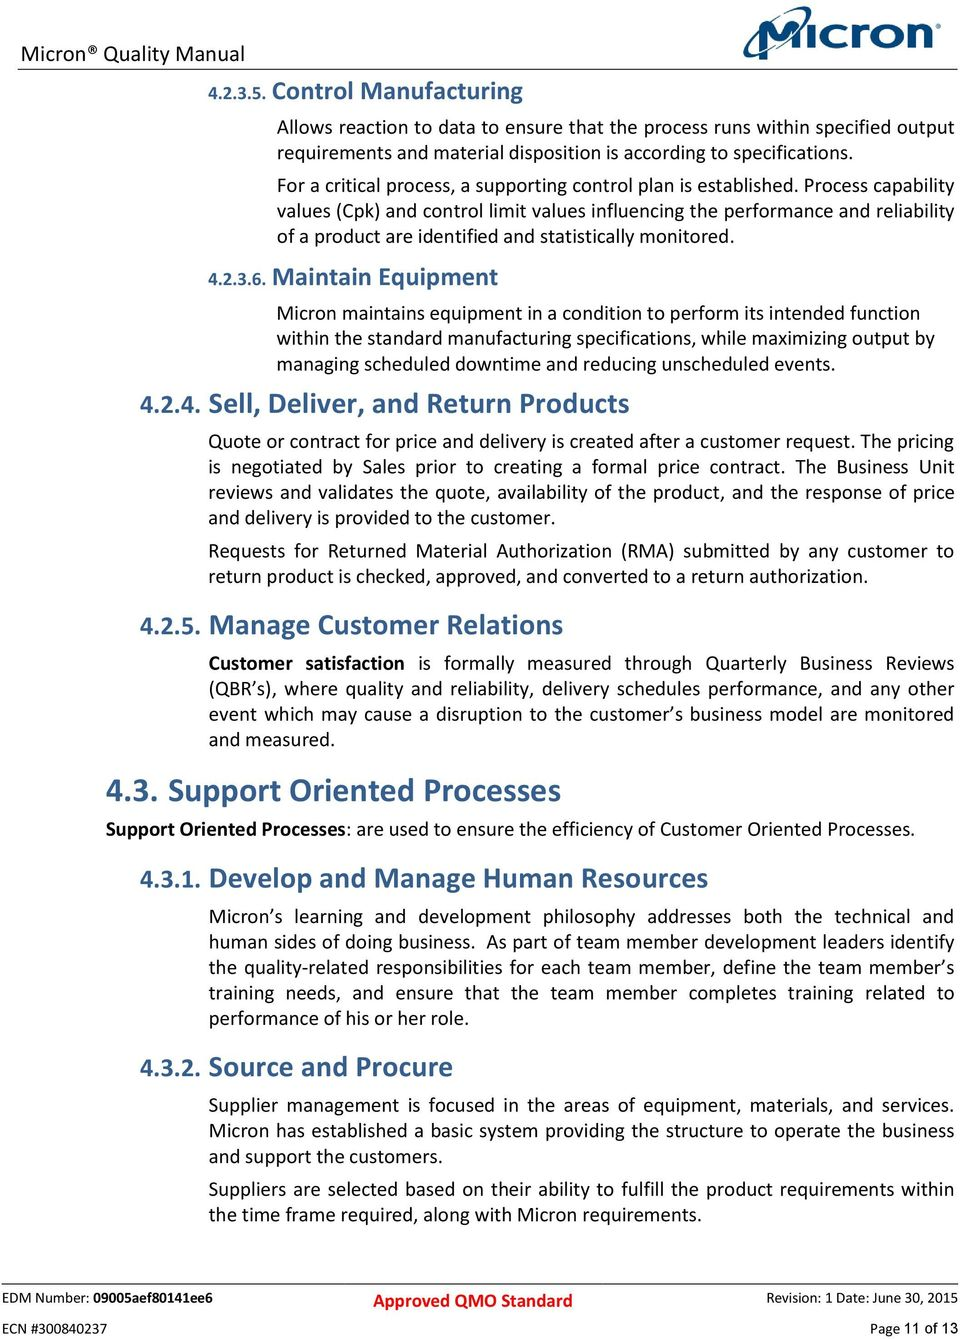 Process capability values (Cpk) and control limit values influencing the  performance and reliability of